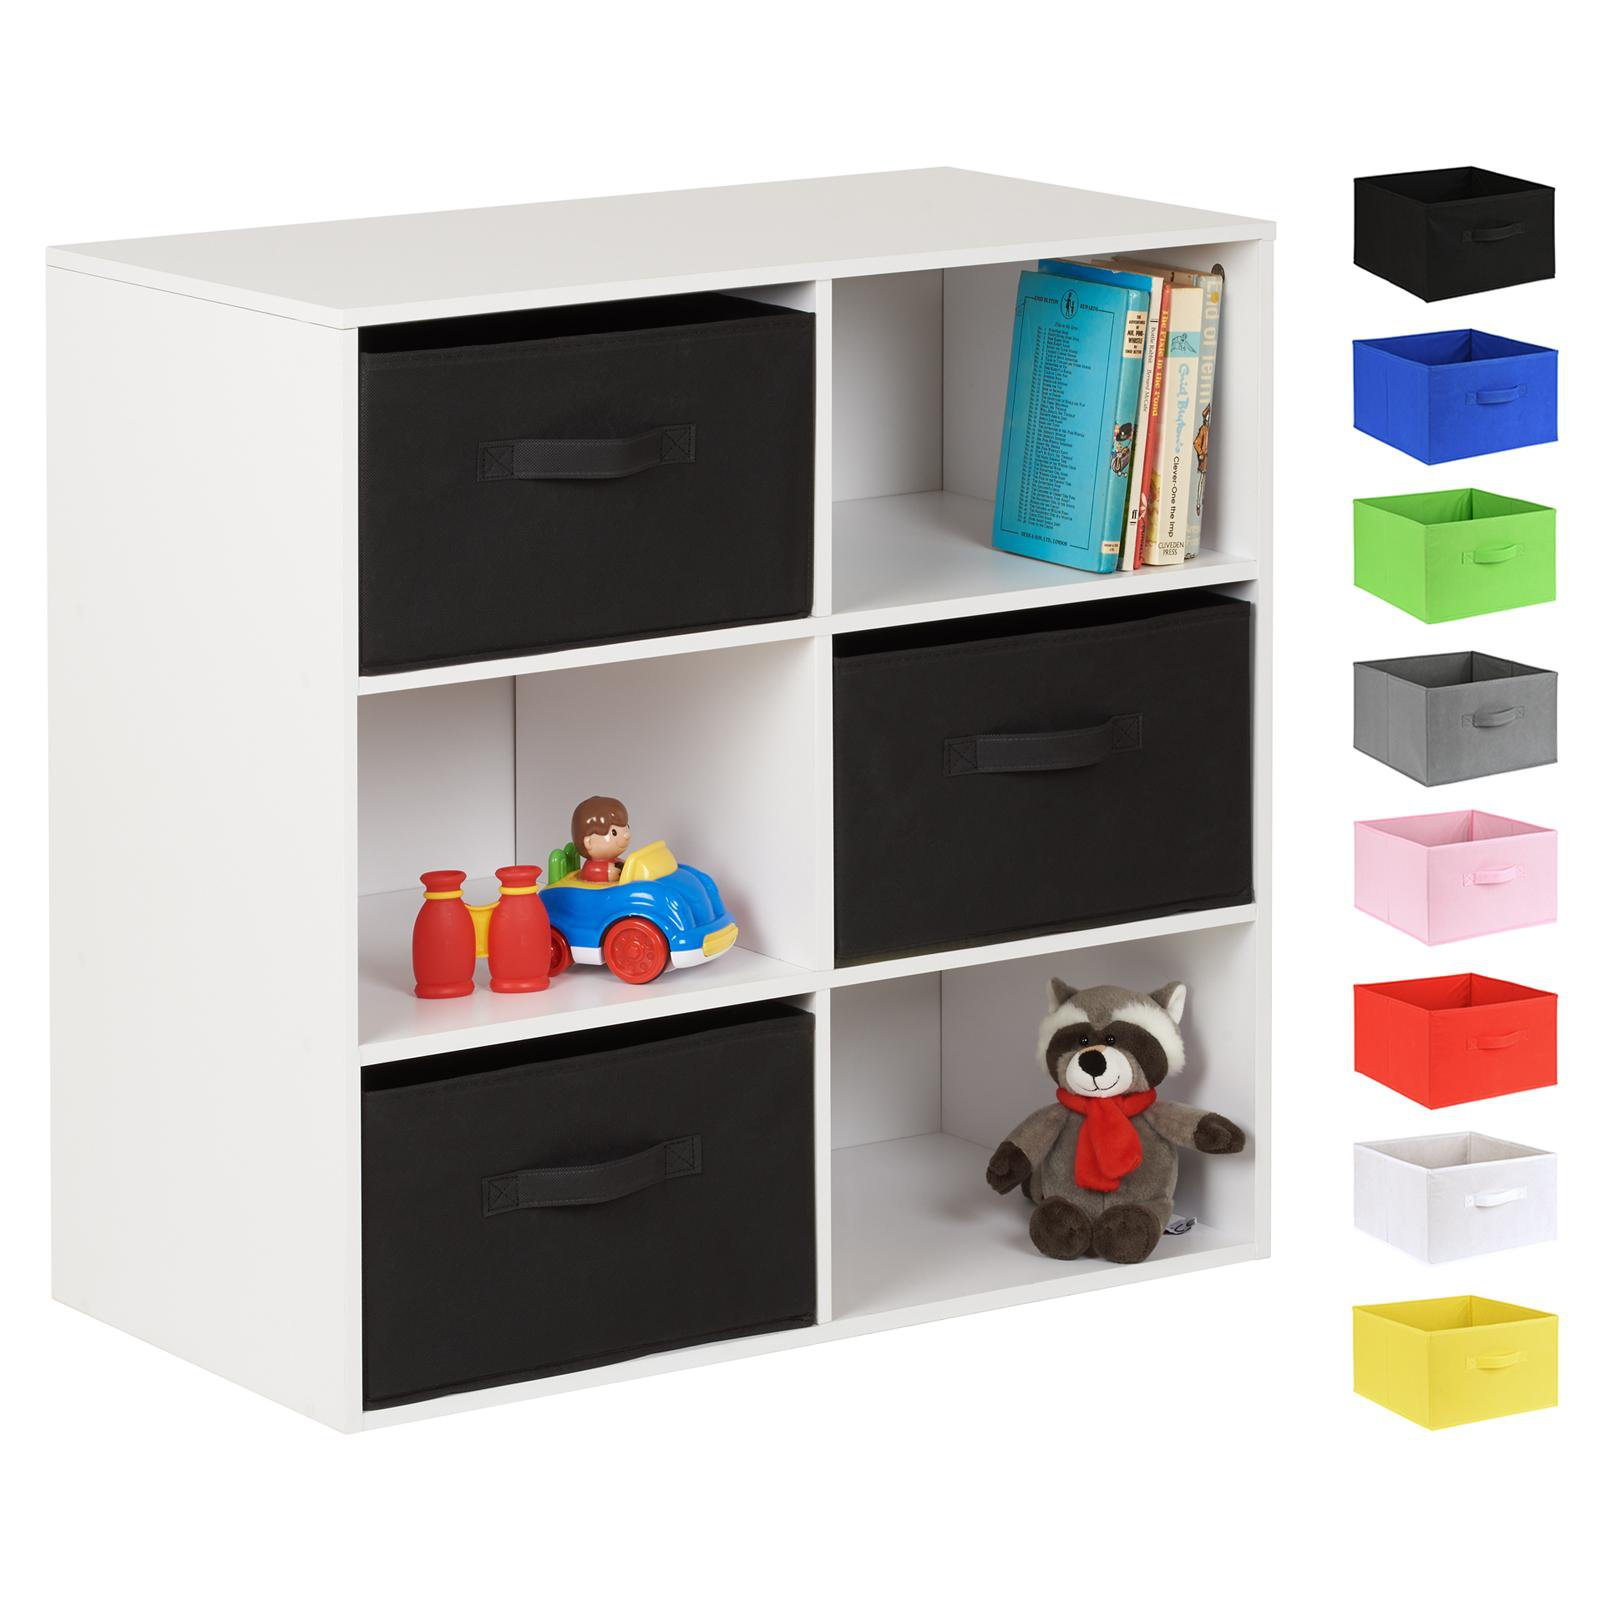 image-Hartleys White 6 Cube Kids Storage Unit & 3 Handled Box Drawers - Black